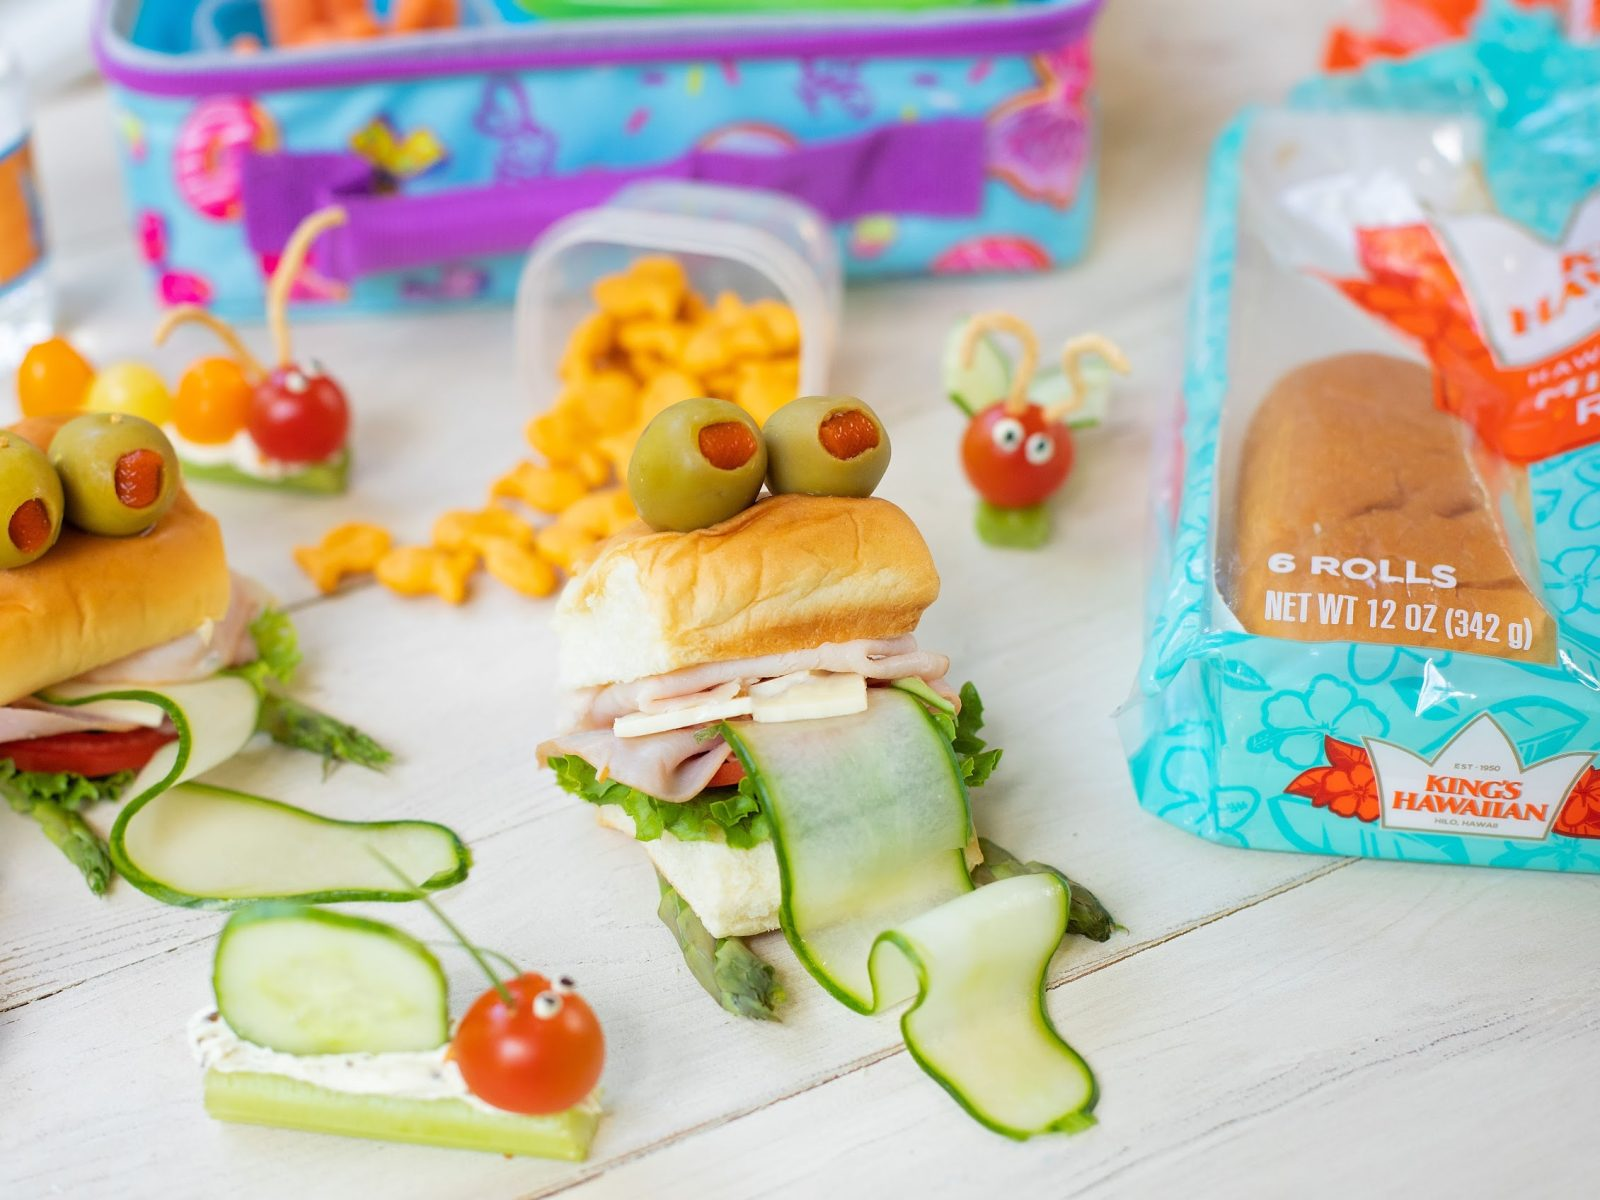 Back To School Is More Fun With This Toad-ally Awesome Mini Club Sub On King's Hawaiian - Each Purchase Supports The No Kid Hungry Campaign on I Heart Publix 1